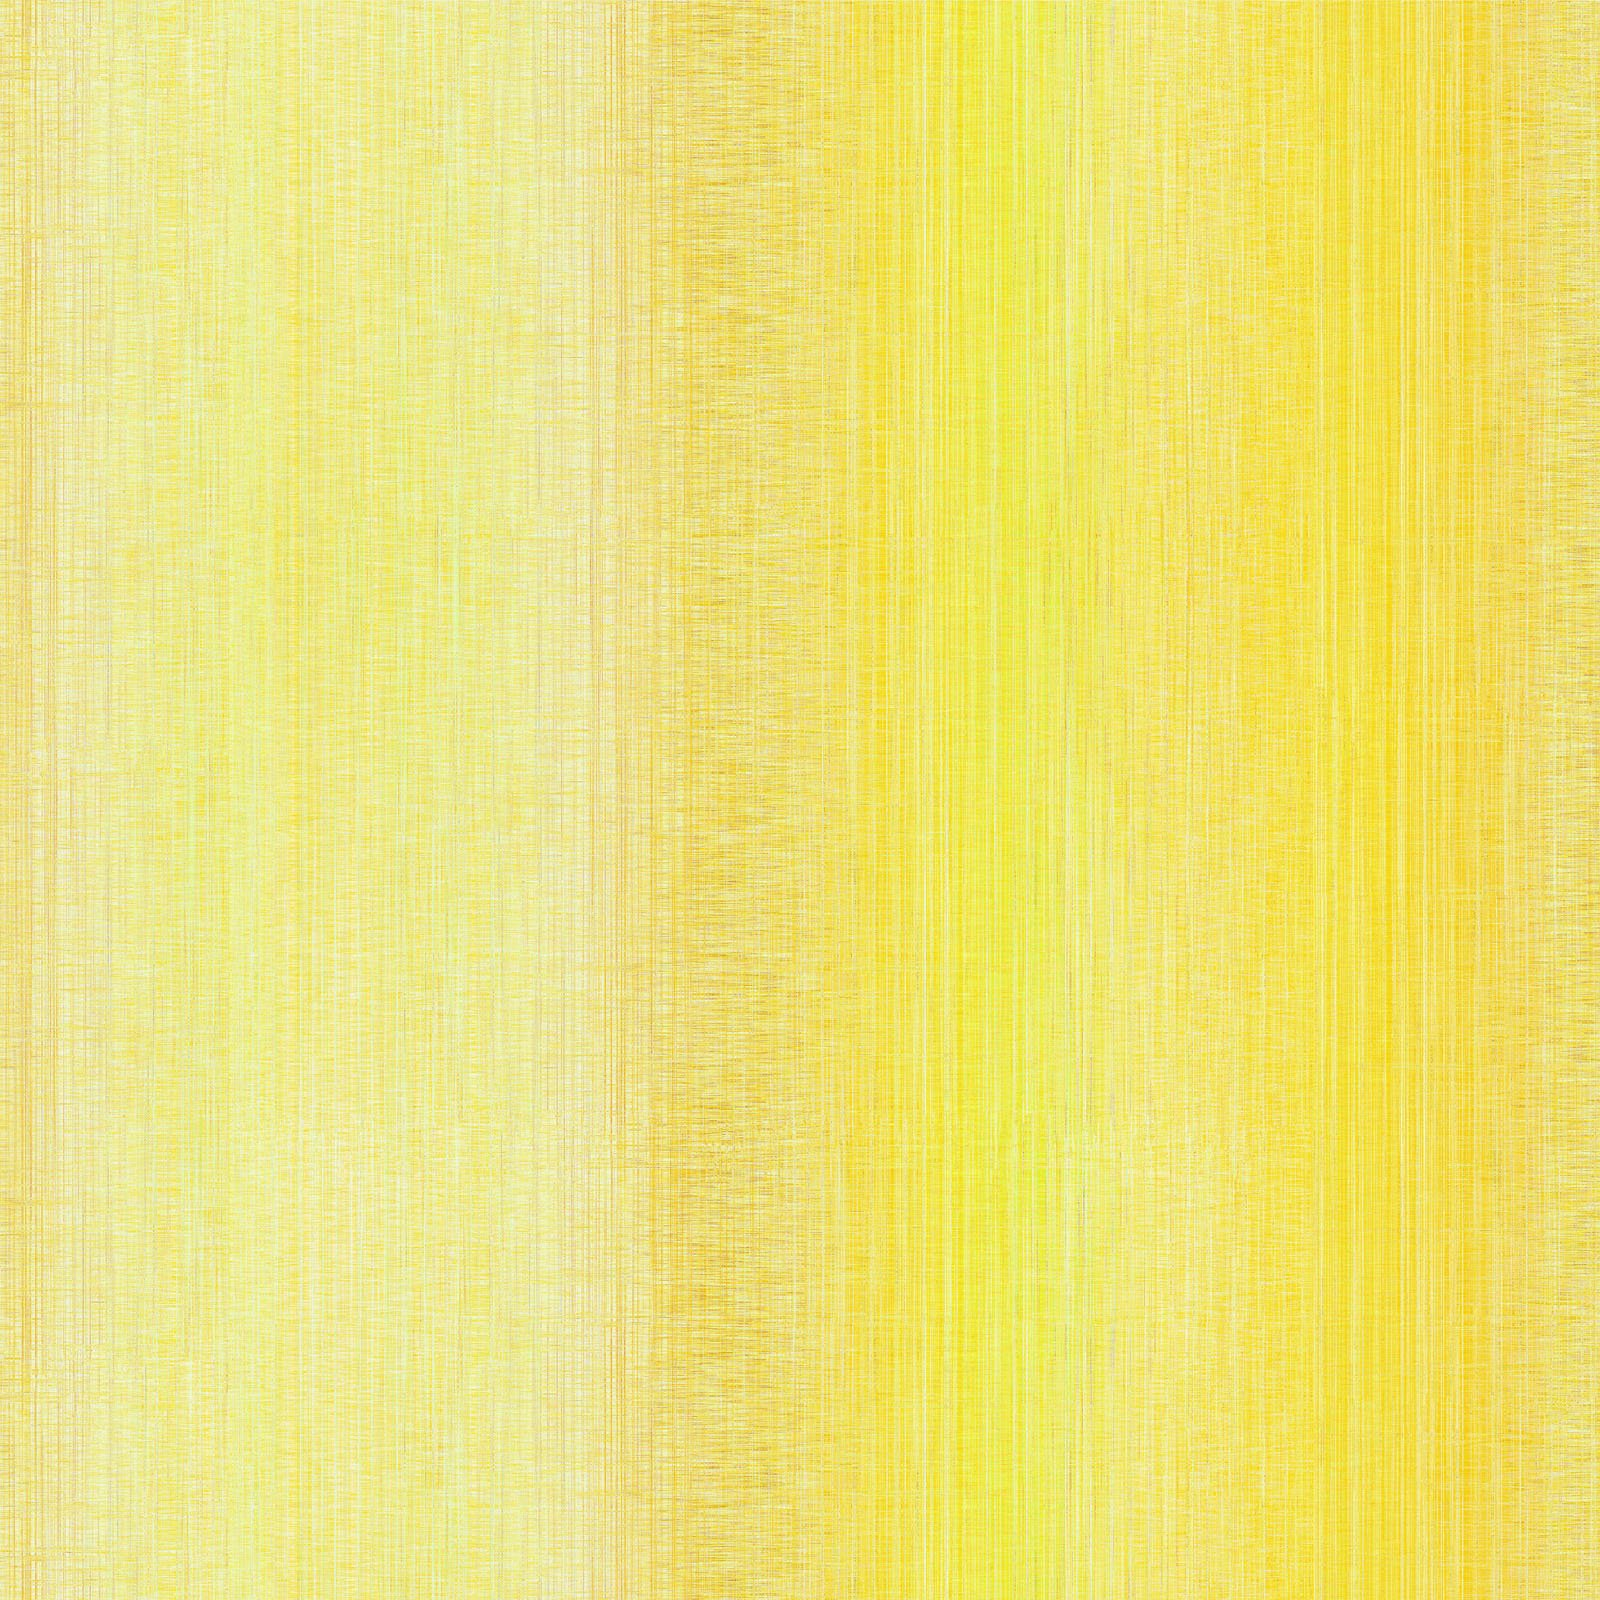 OMBR-4498 Y - OMBRE 108 DIGITAL BY P&B BOUTIQUE YELLOW - ARRIVING IN AUGUST 2021